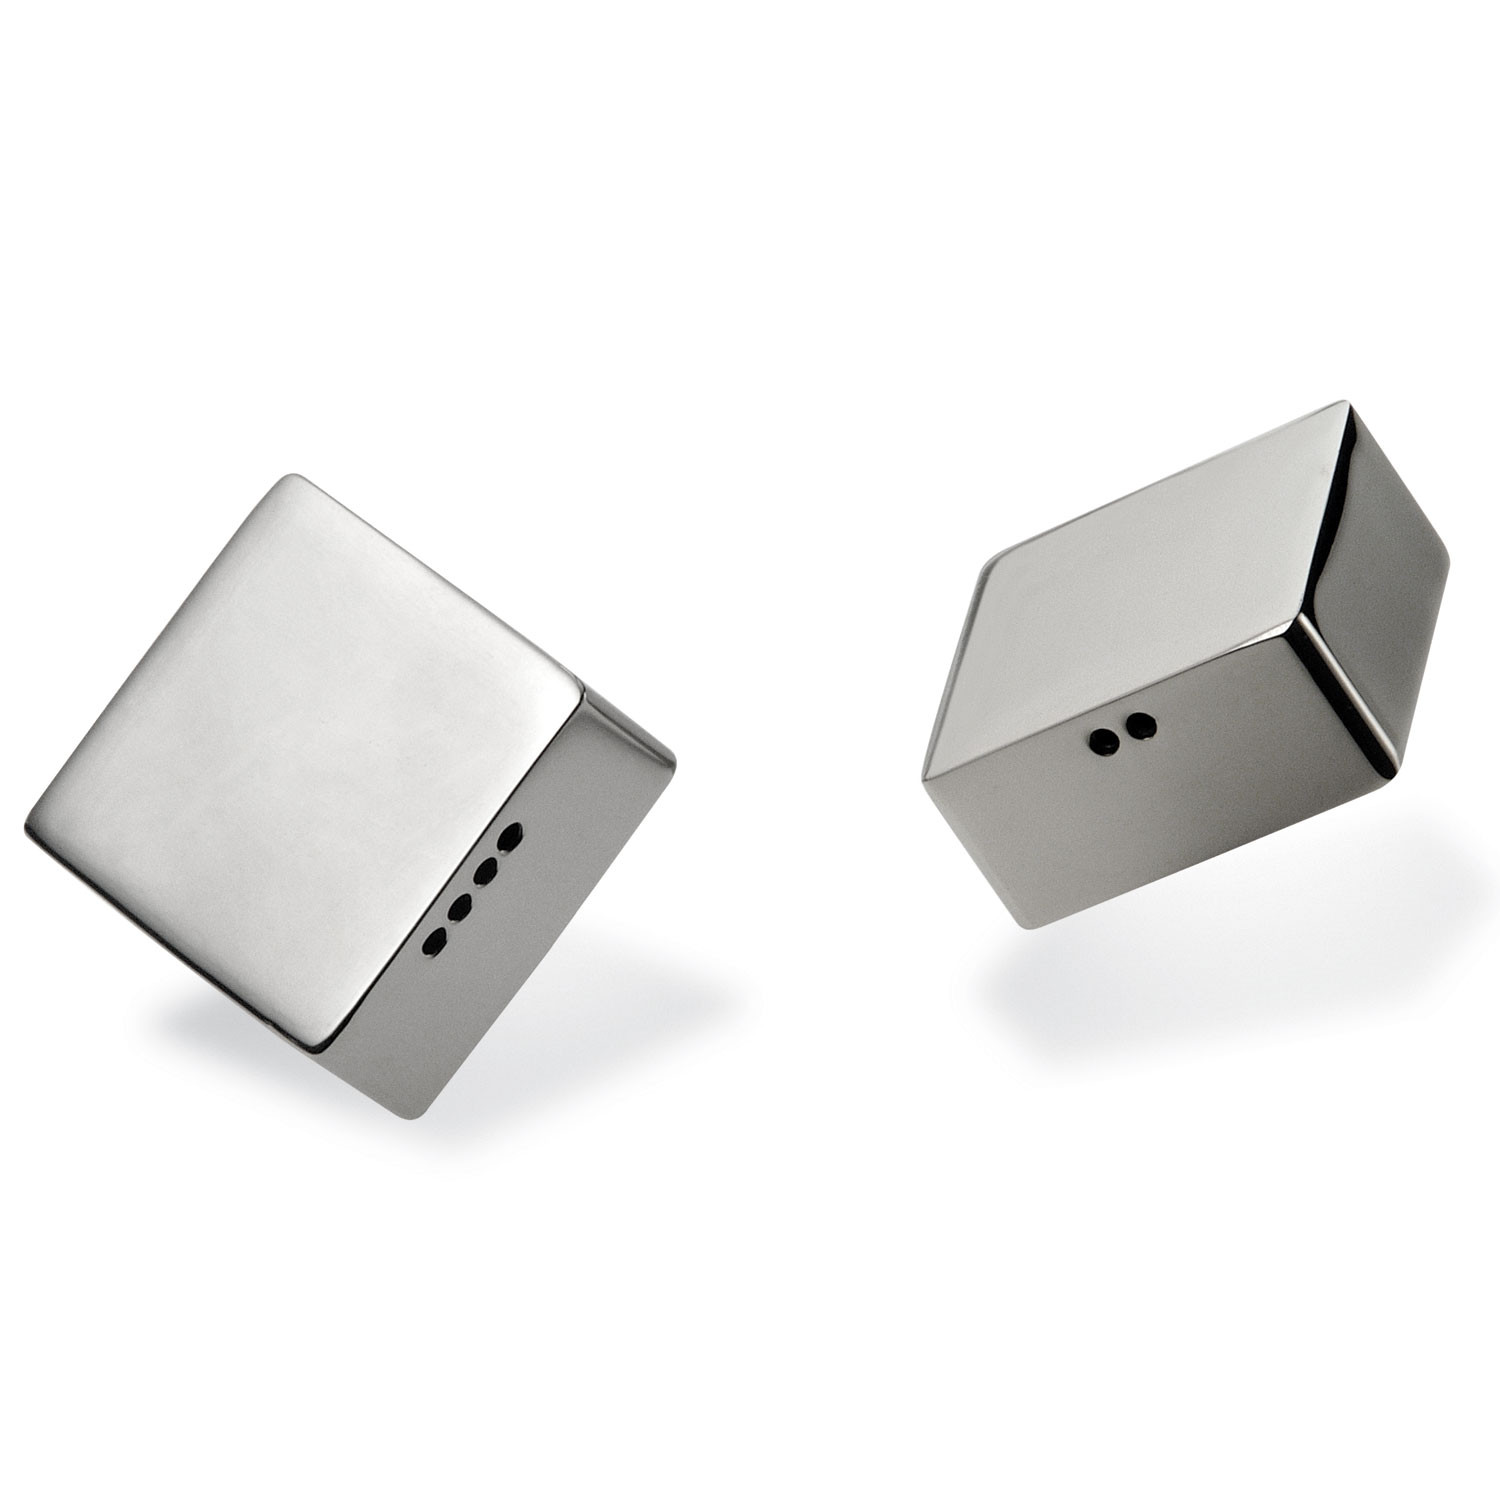 Modern Salt Pepper Shakers Murazzo Square Salt Pepper Shaker Set Riva Tableware Touch